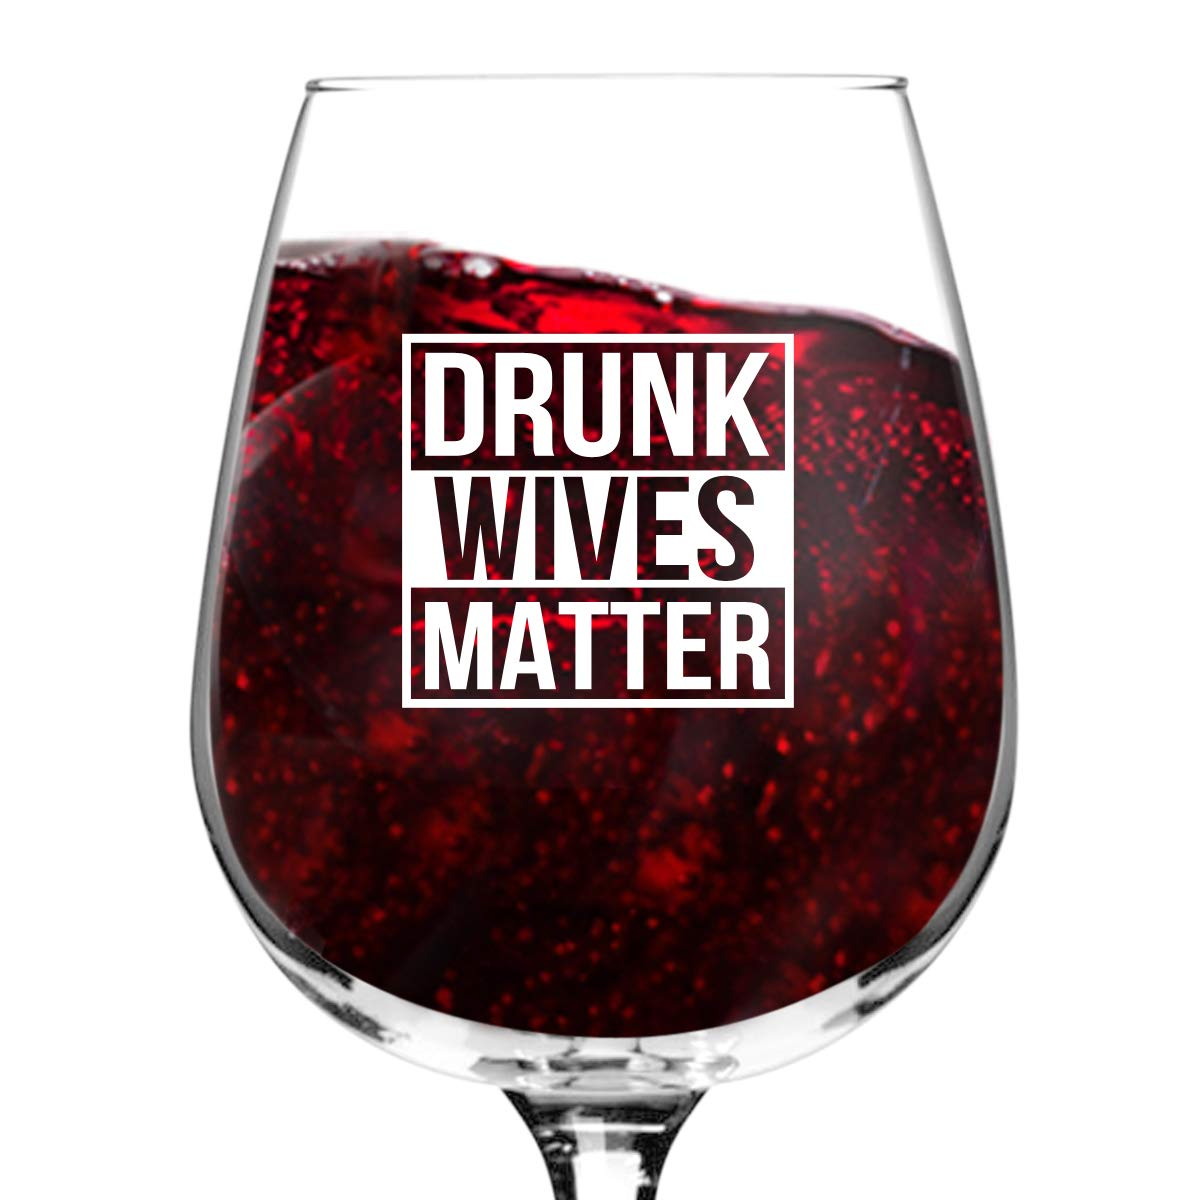 Drunk Wives Matter Wine Glass- Gifts for Women- Premium Birthday Gift for Her, Mom, Best Friend- Unique Present Idea from Husband to Wife